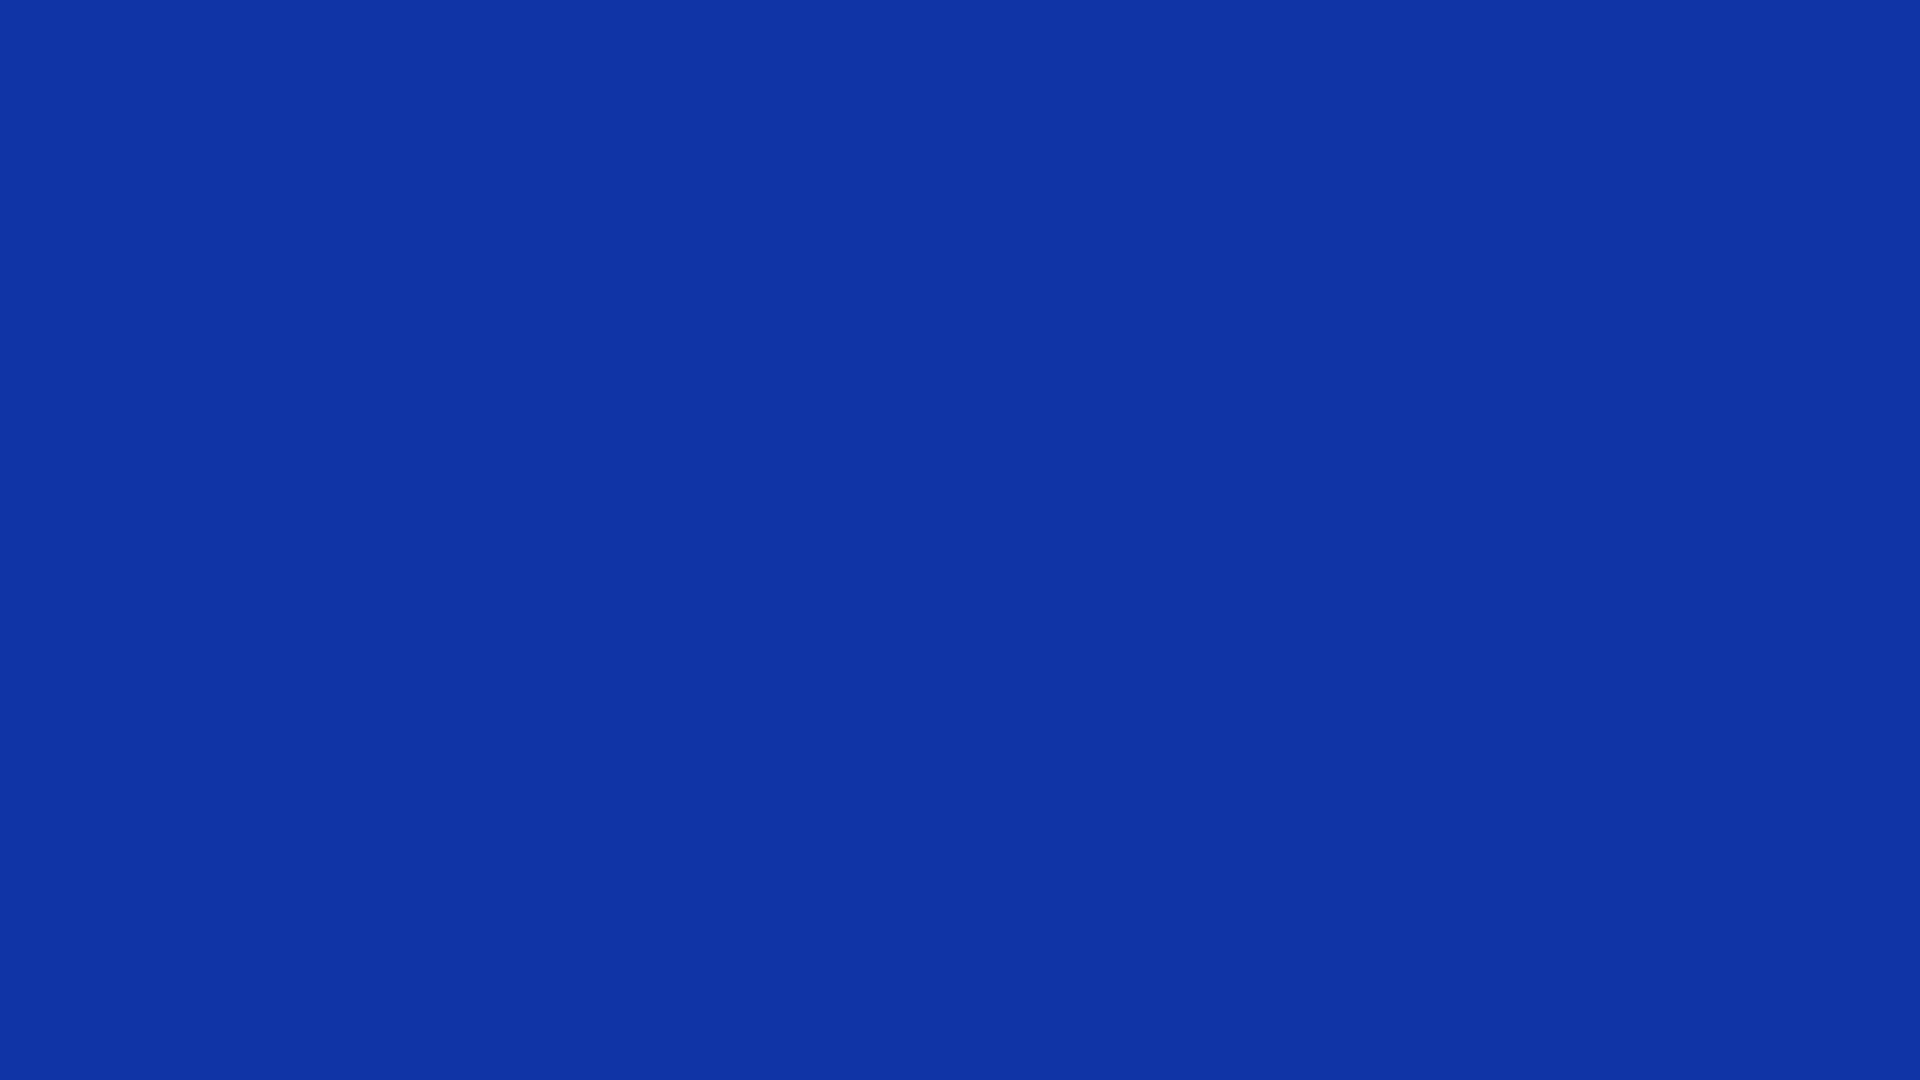 1920x1080 Egyptian Blue Solid Color Background